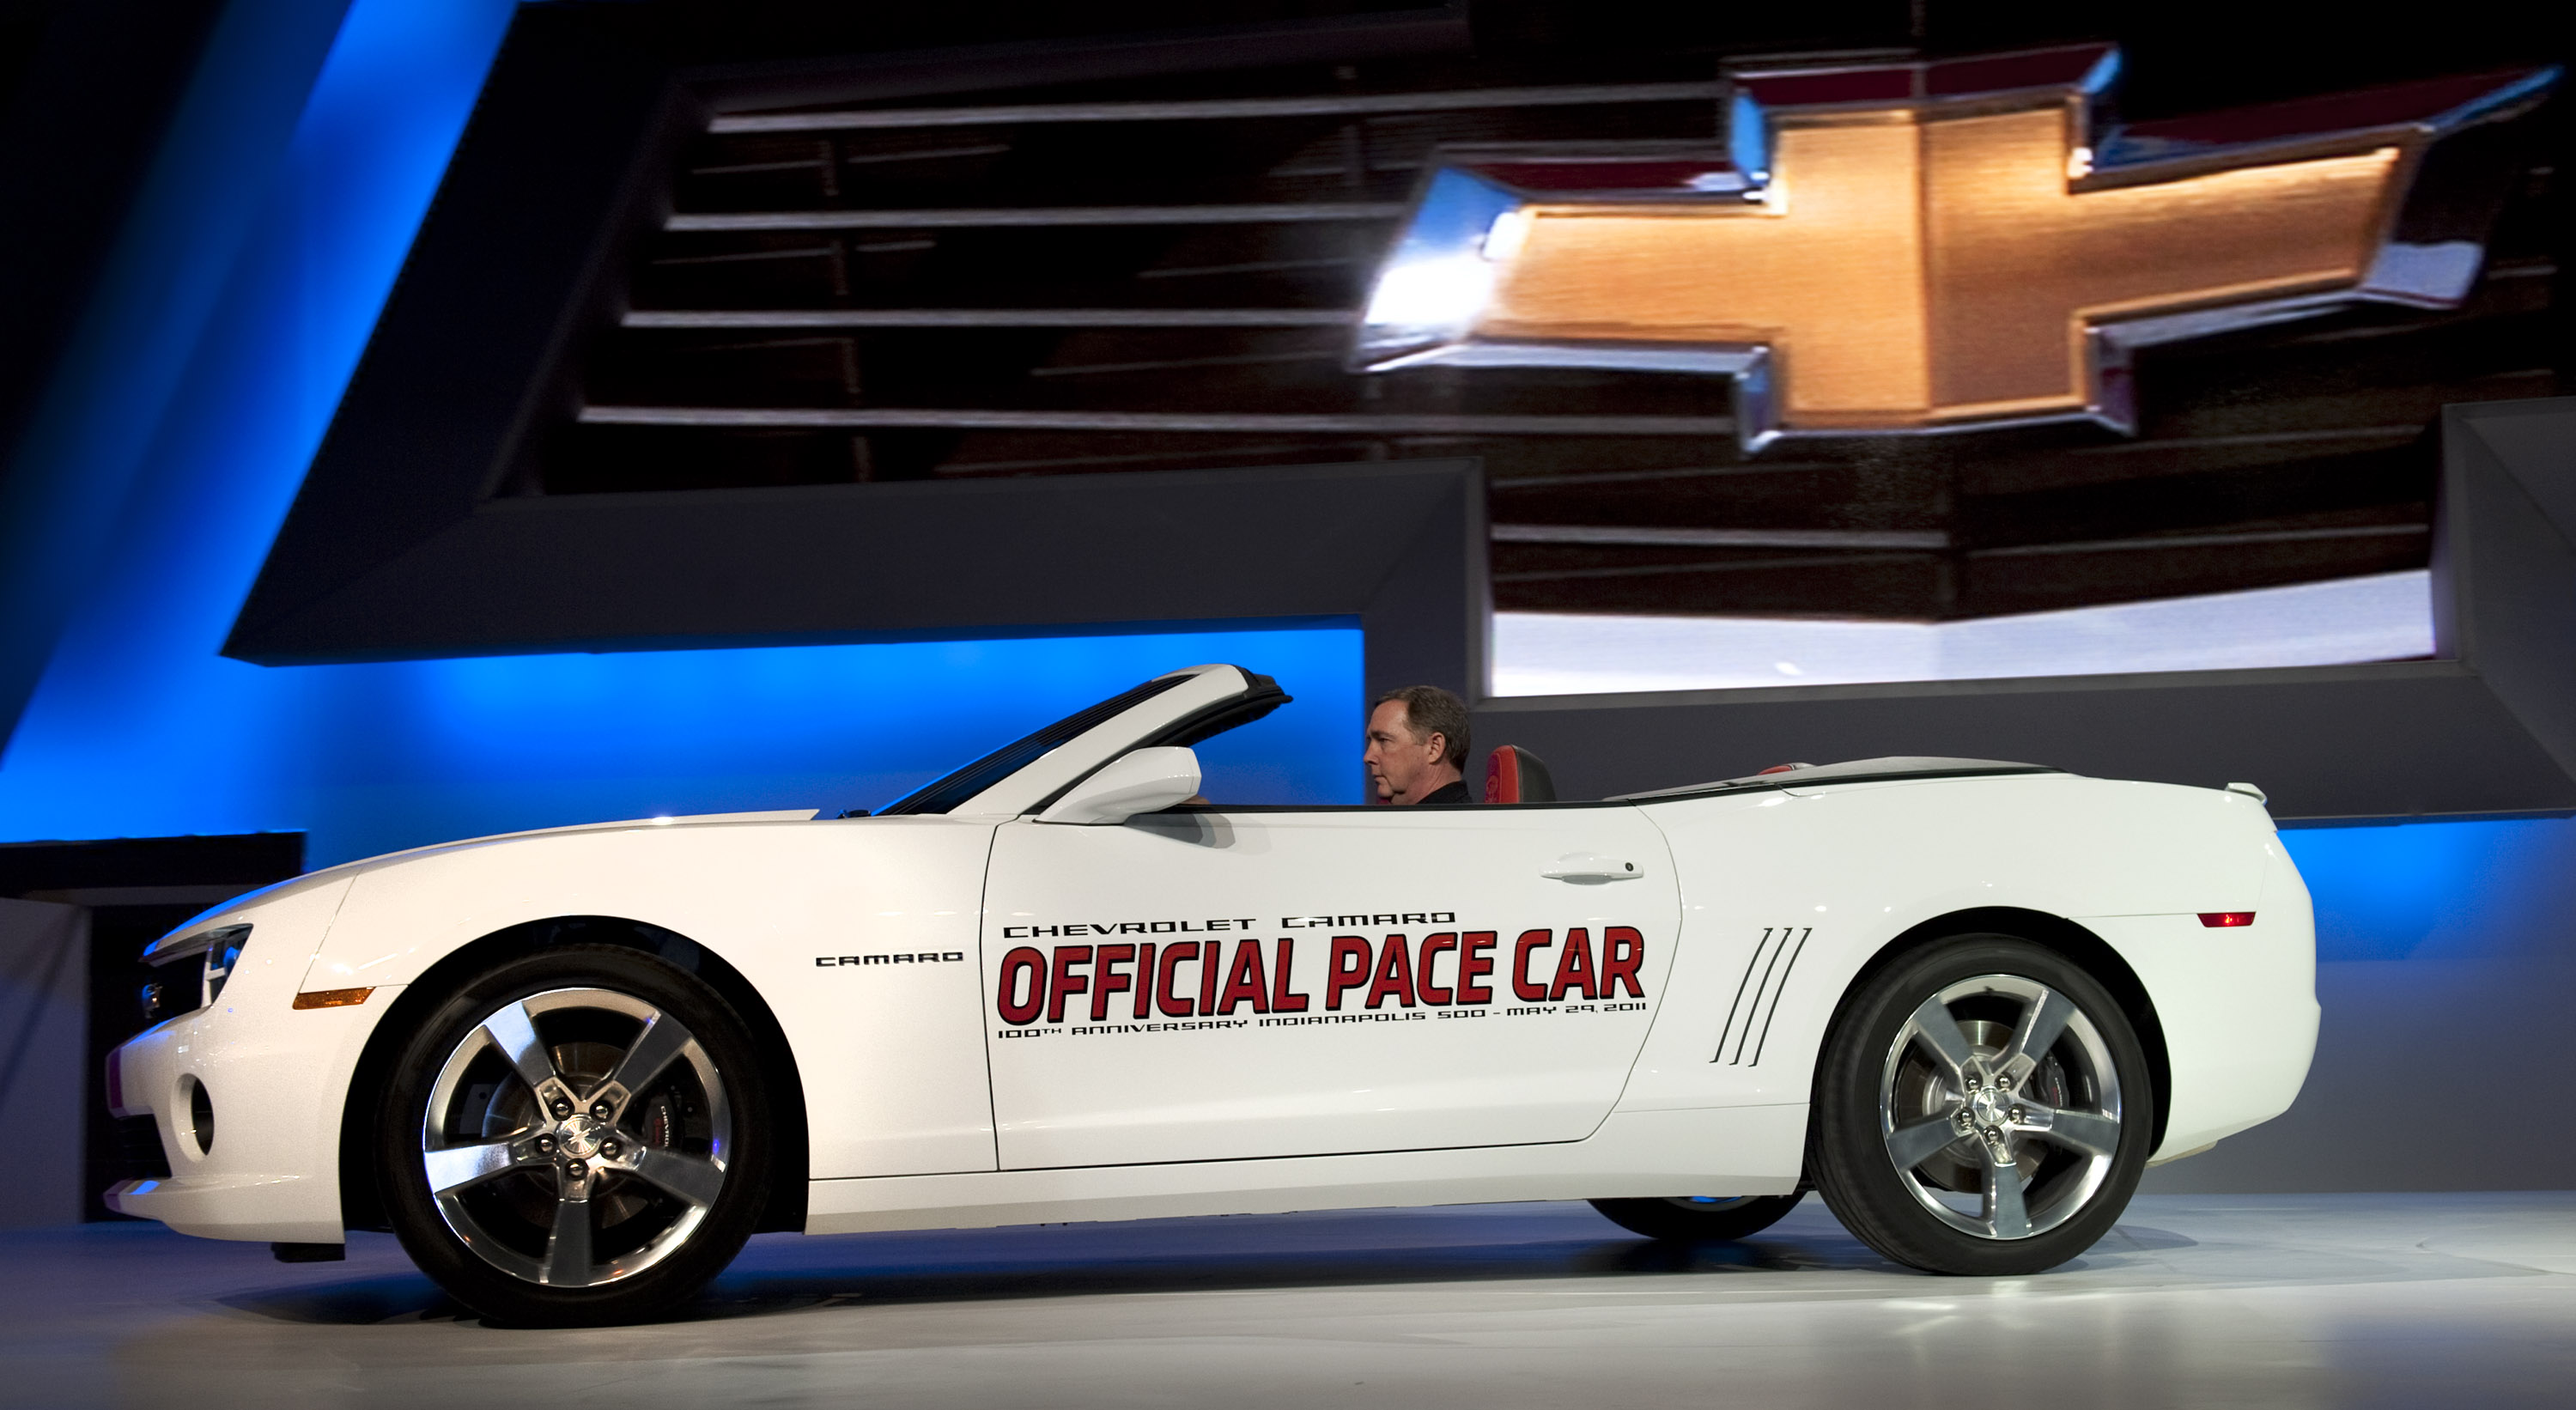 Swell 2011 Chevrolet Camaro Indianapolis 500 Special Edition Pace Car Wiring Digital Resources Dylitashwinbiharinl